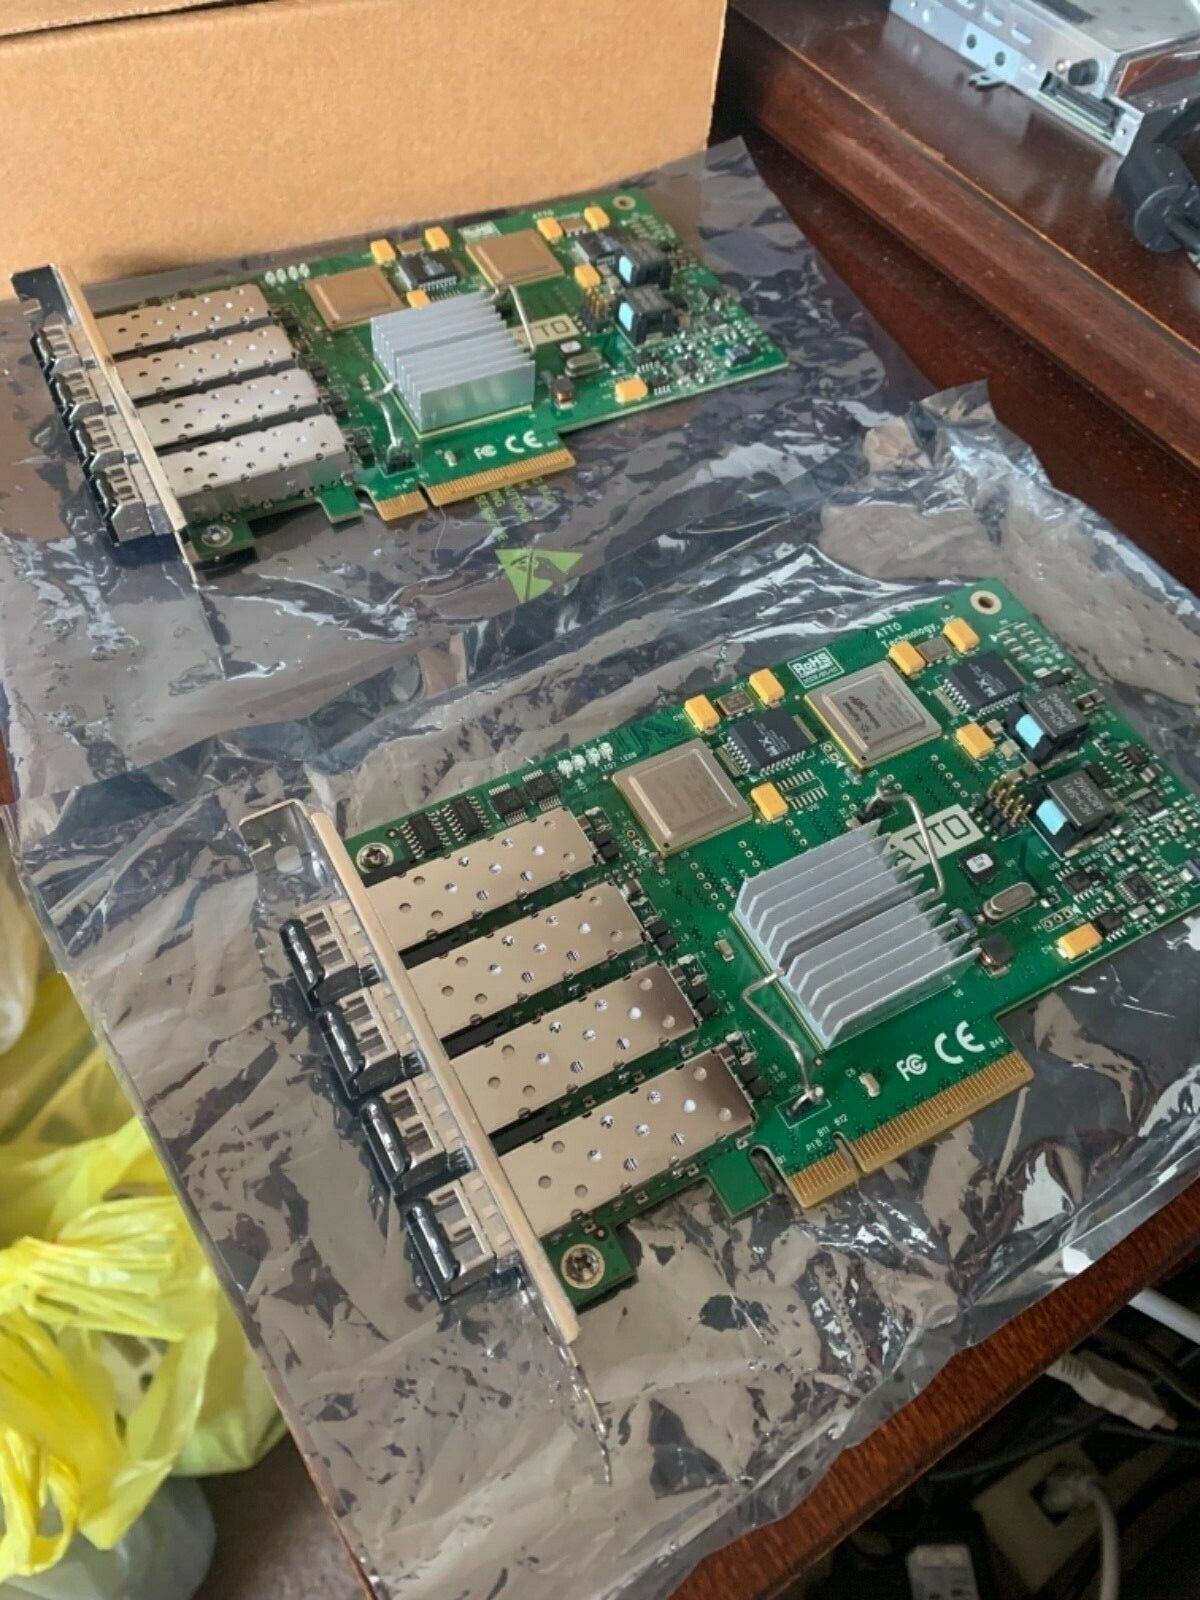 (4) ATTO FC-44ES 4Gb/s PCIe fibre channel HBA cards for sale togther